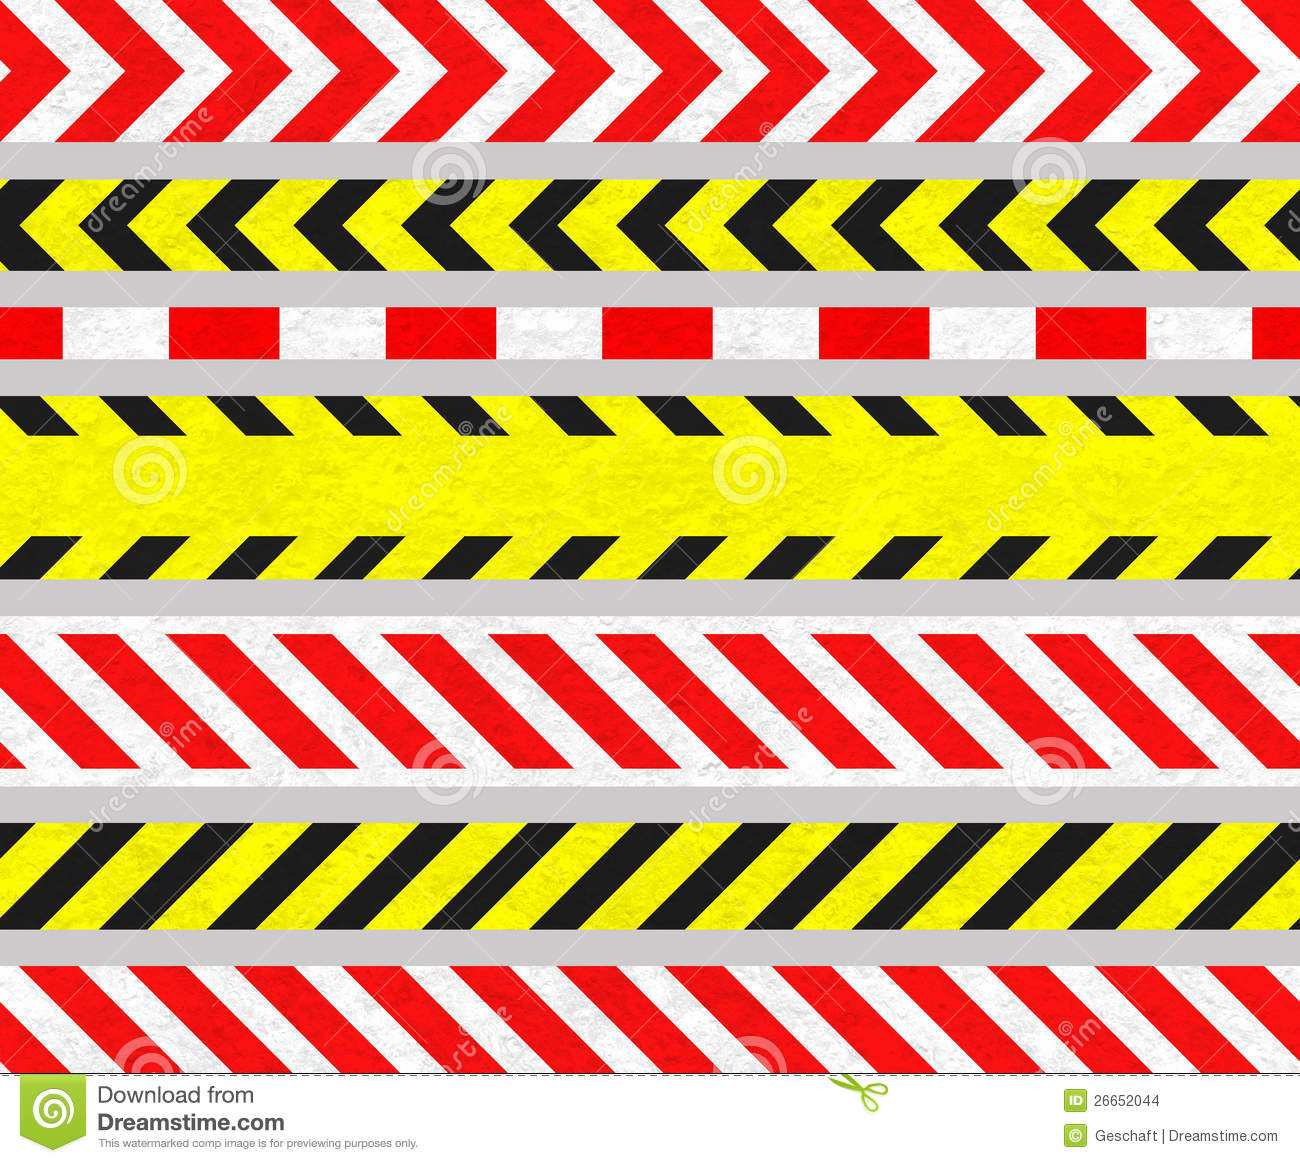 Caution Tapes And Warning Signs, Seamless Stripes Stock. What Can You Do With A Degree In Public Health. Telephone Service San Diego Snmp Open Source. Aladdin Bail Bonds Ventura Ca. How Do You Say Butt In Spanish. Project Management Masters Invoice Data Model. Full Brazilian Laser Hair Removal. Millennium Partners Hedge Fund. Er Nurse Certifications Massage Schools Miami